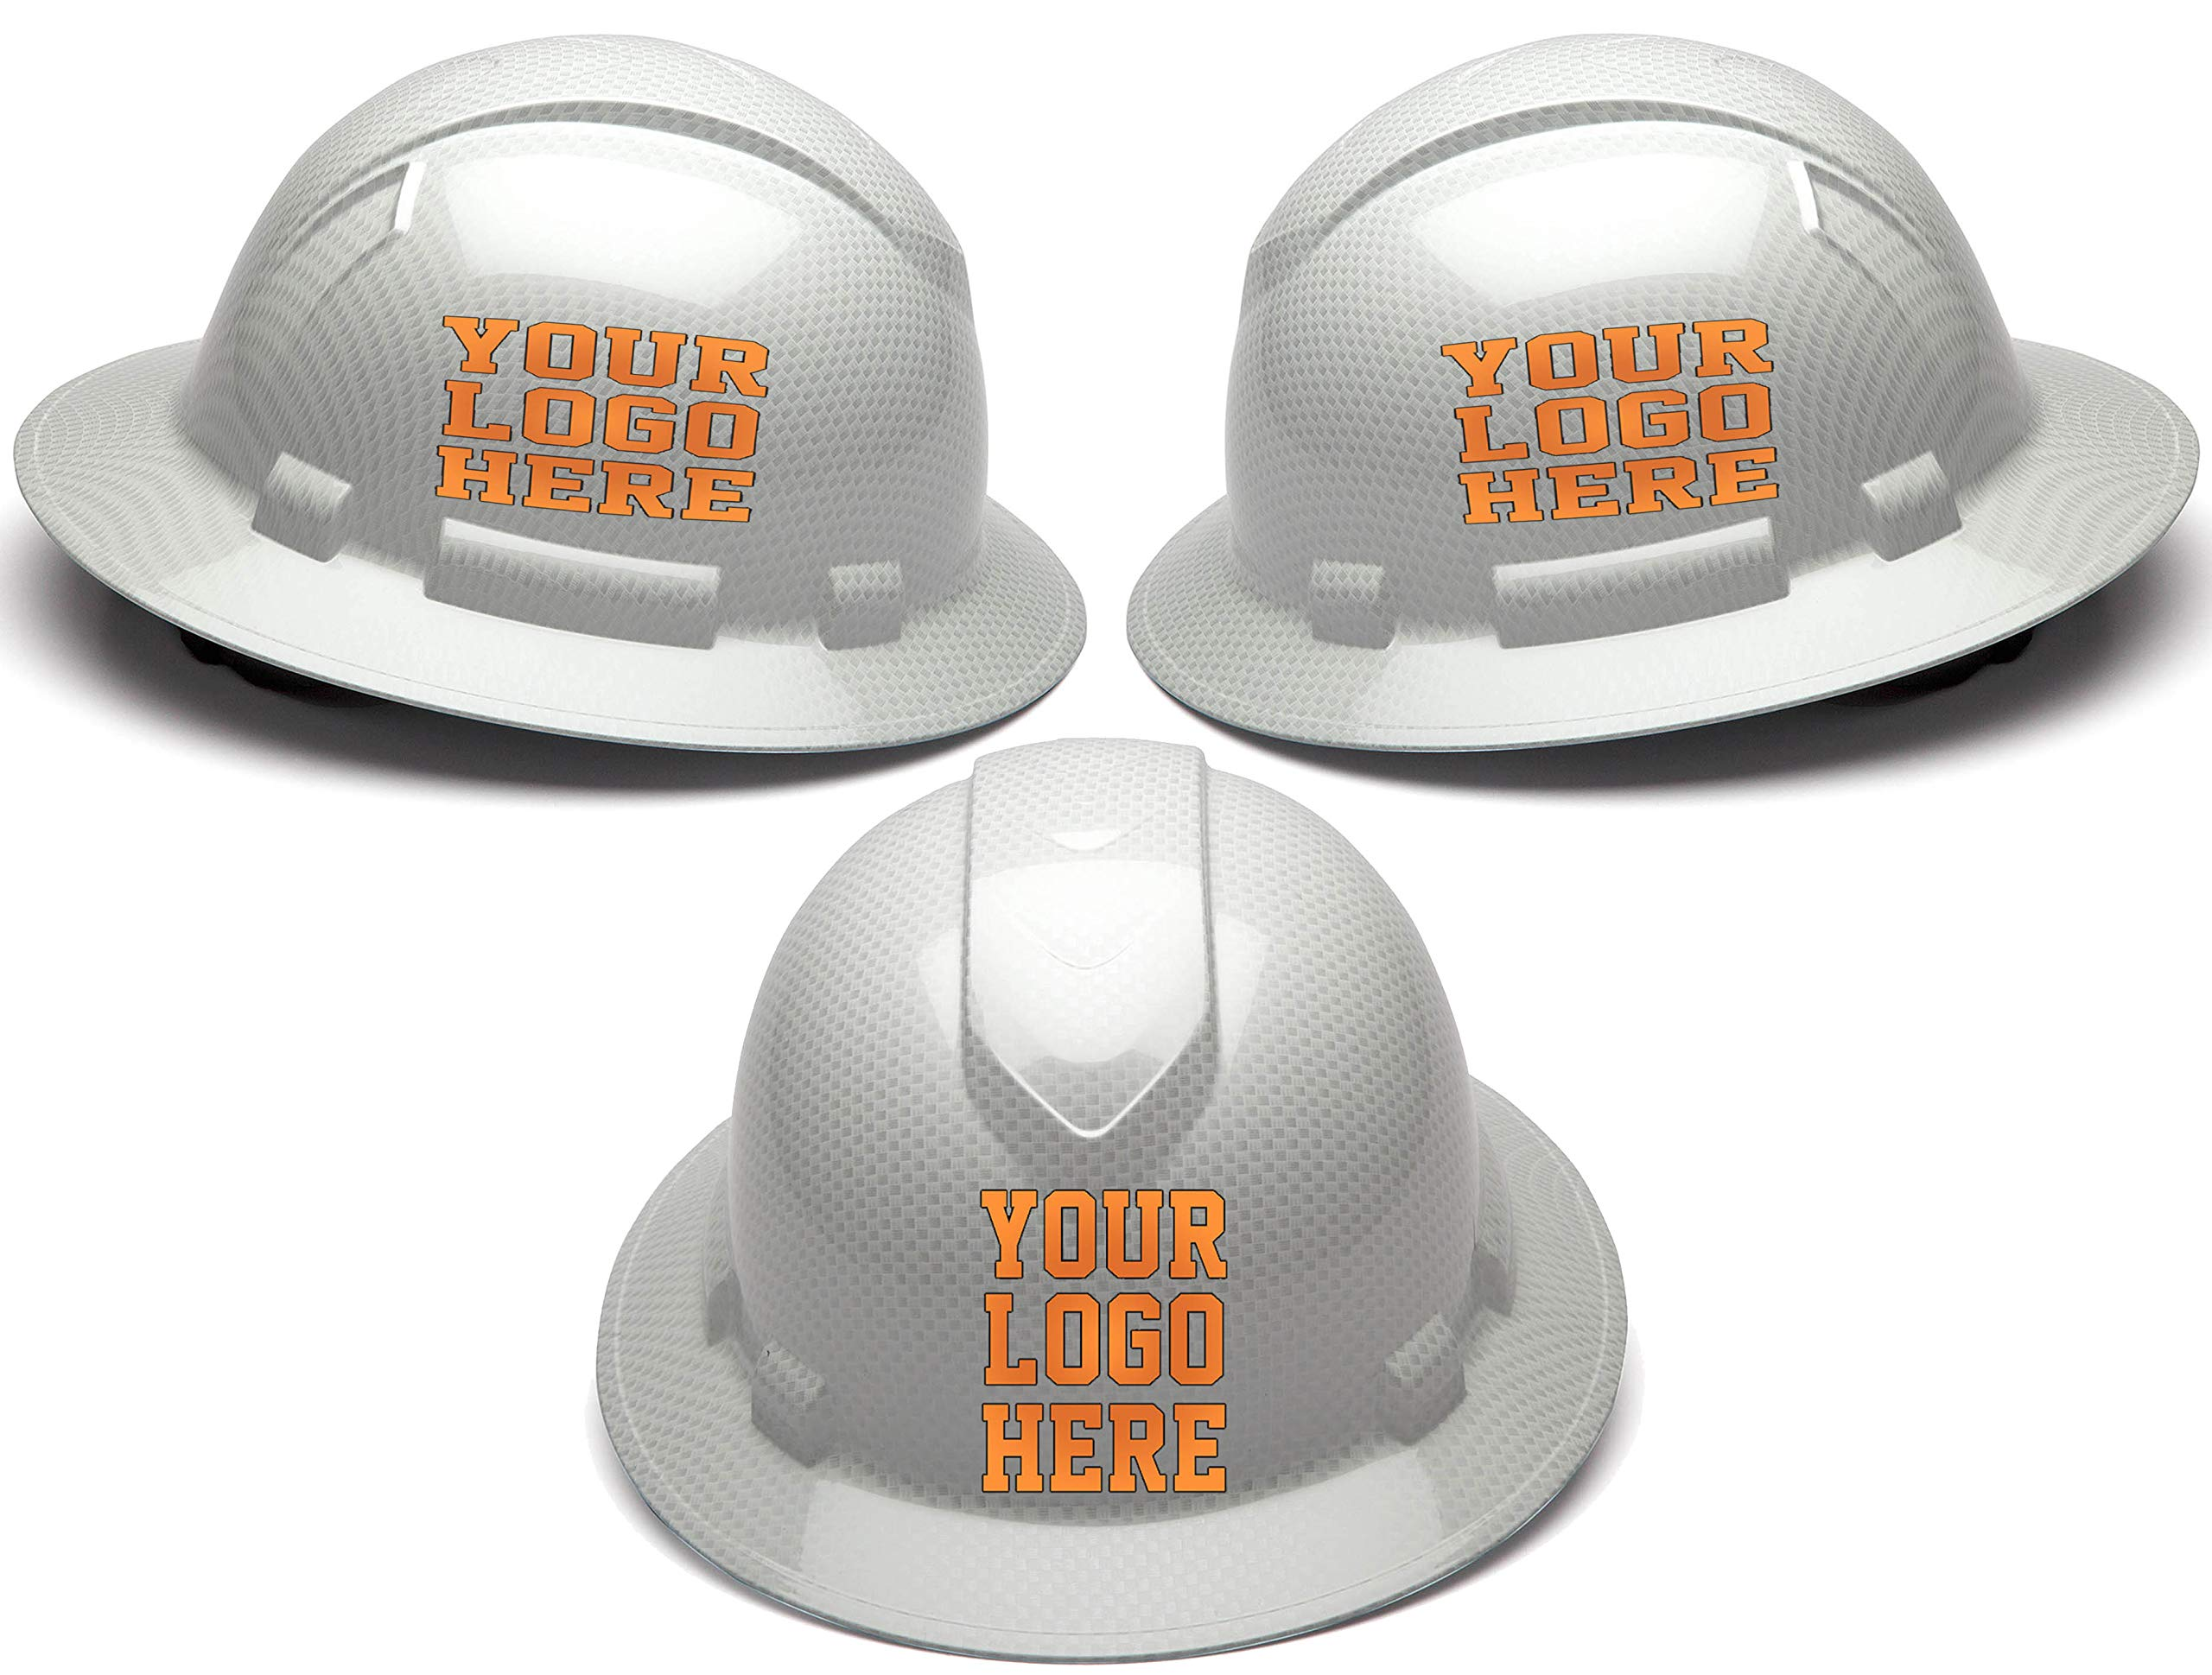 Custom Hard Hats - Personalized Logo - Pyramex Ridgeline Full Brim Cap 4 Point Ratchet Suspension by Safety Miracle (Image #1)